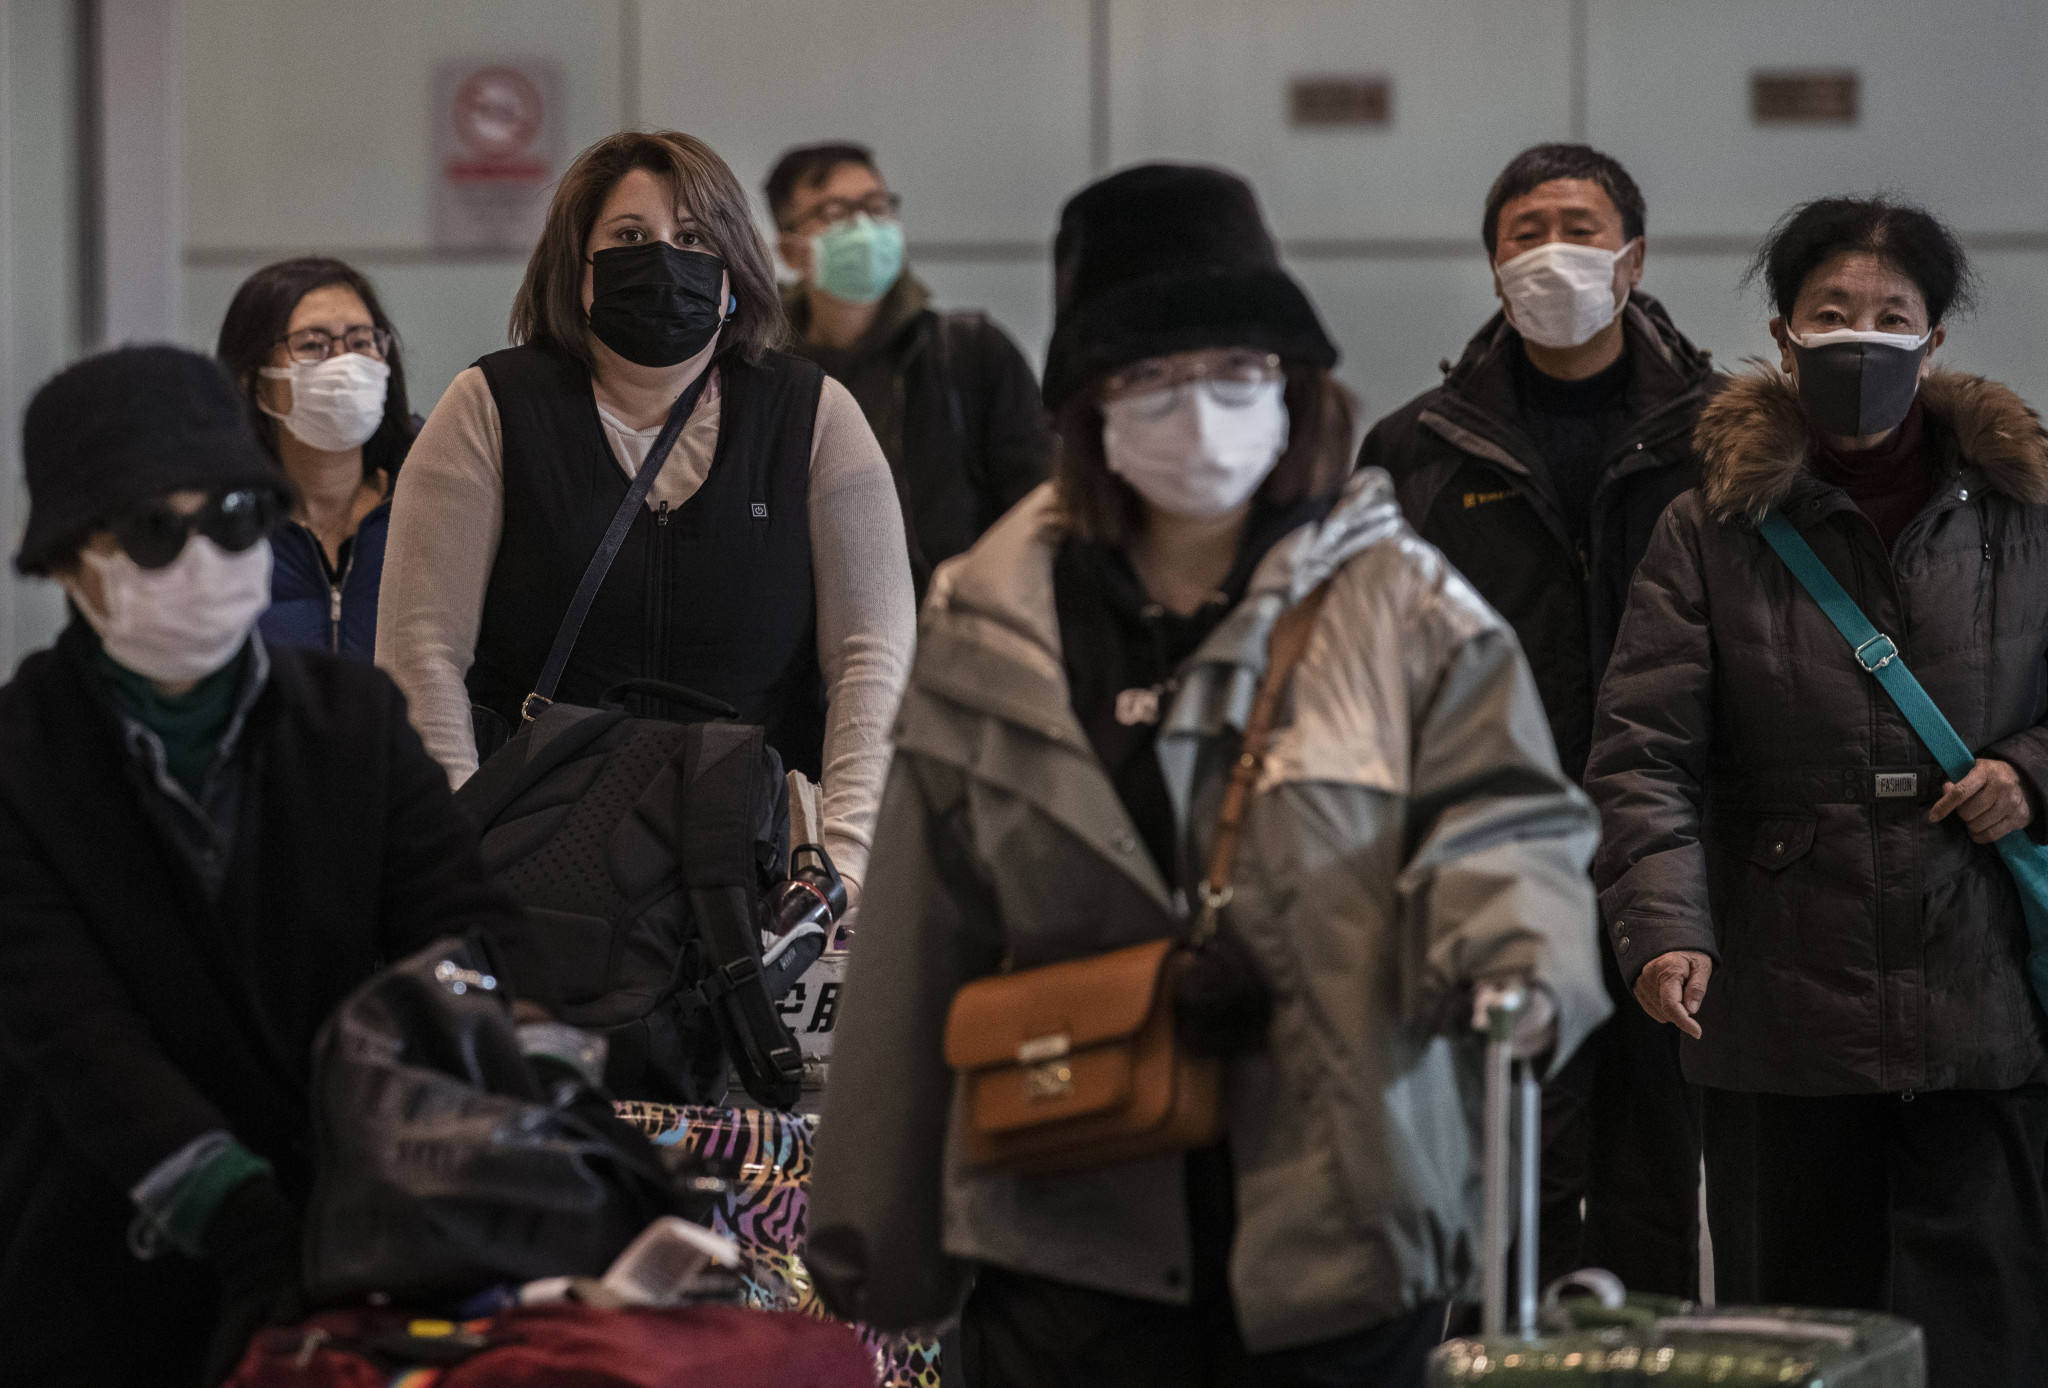 The coronavirus outbreak in China has led to a number of sporting events being postponed, cancelled or relocated ©Getty Images